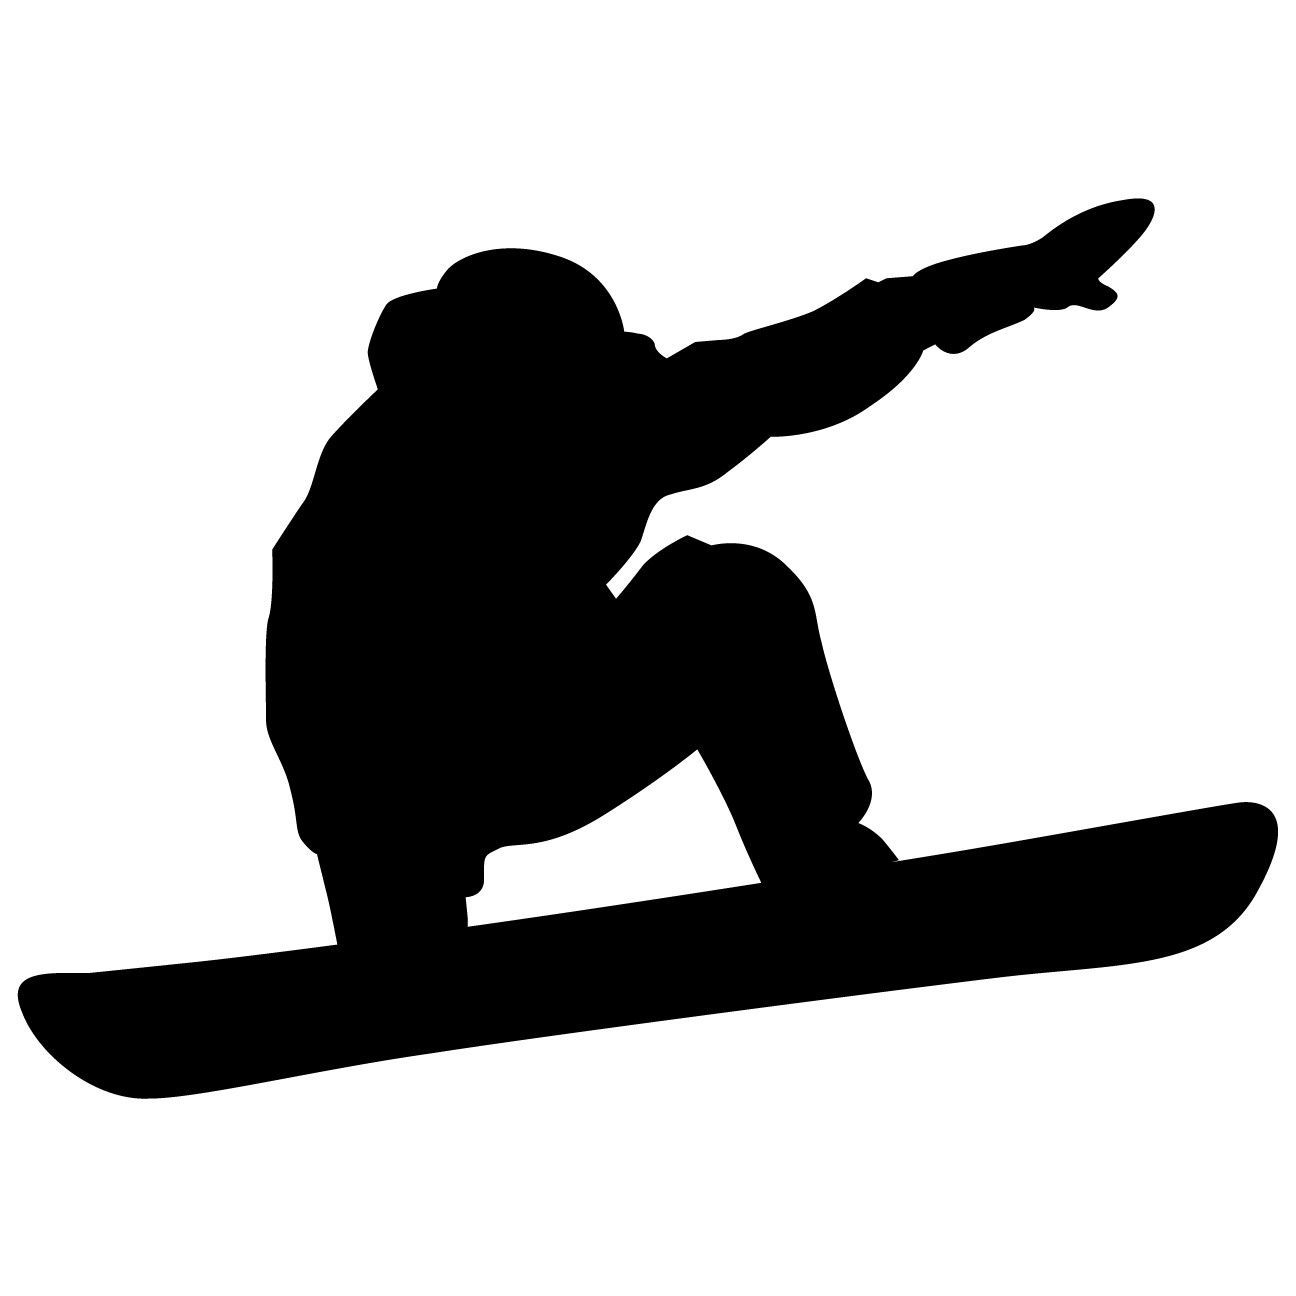 snowboarding wall decal sticker 2 snowboard easy home decor diy home decor affordable home. Black Bedroom Furniture Sets. Home Design Ideas